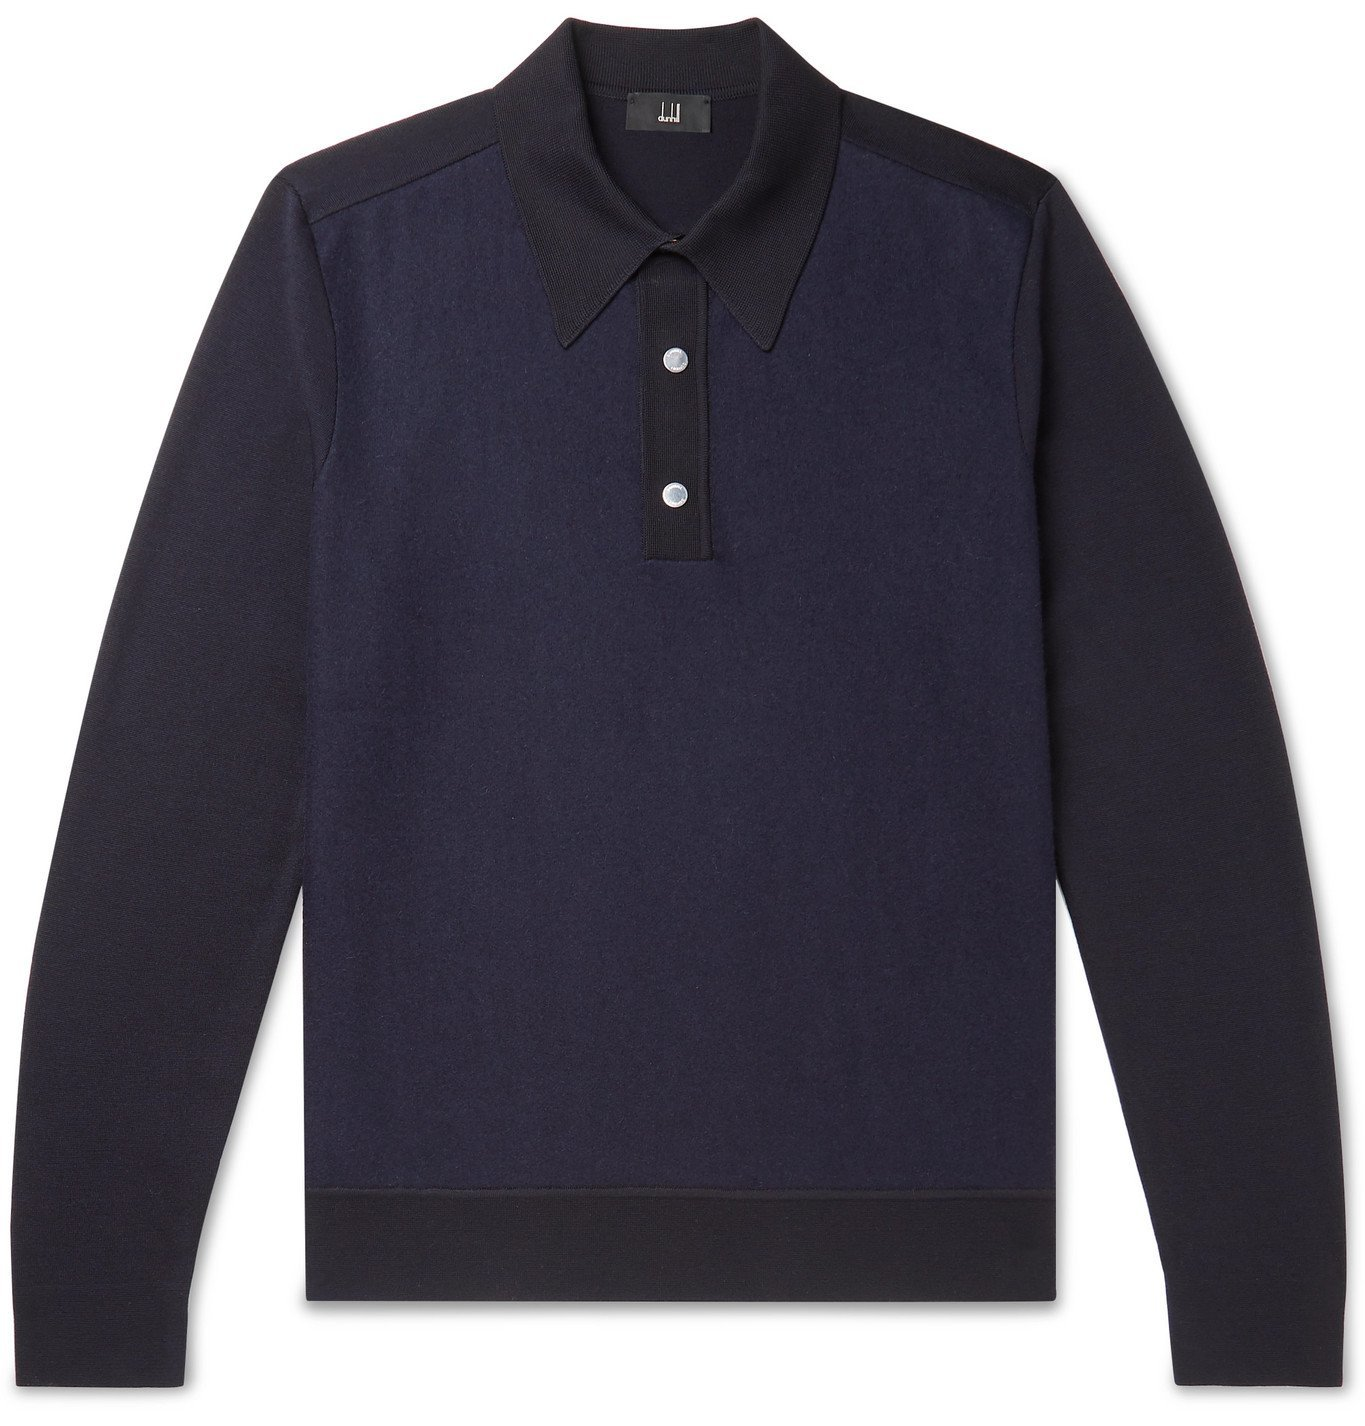 Dunhill - Panelled Wool Polo Shirt - Blue